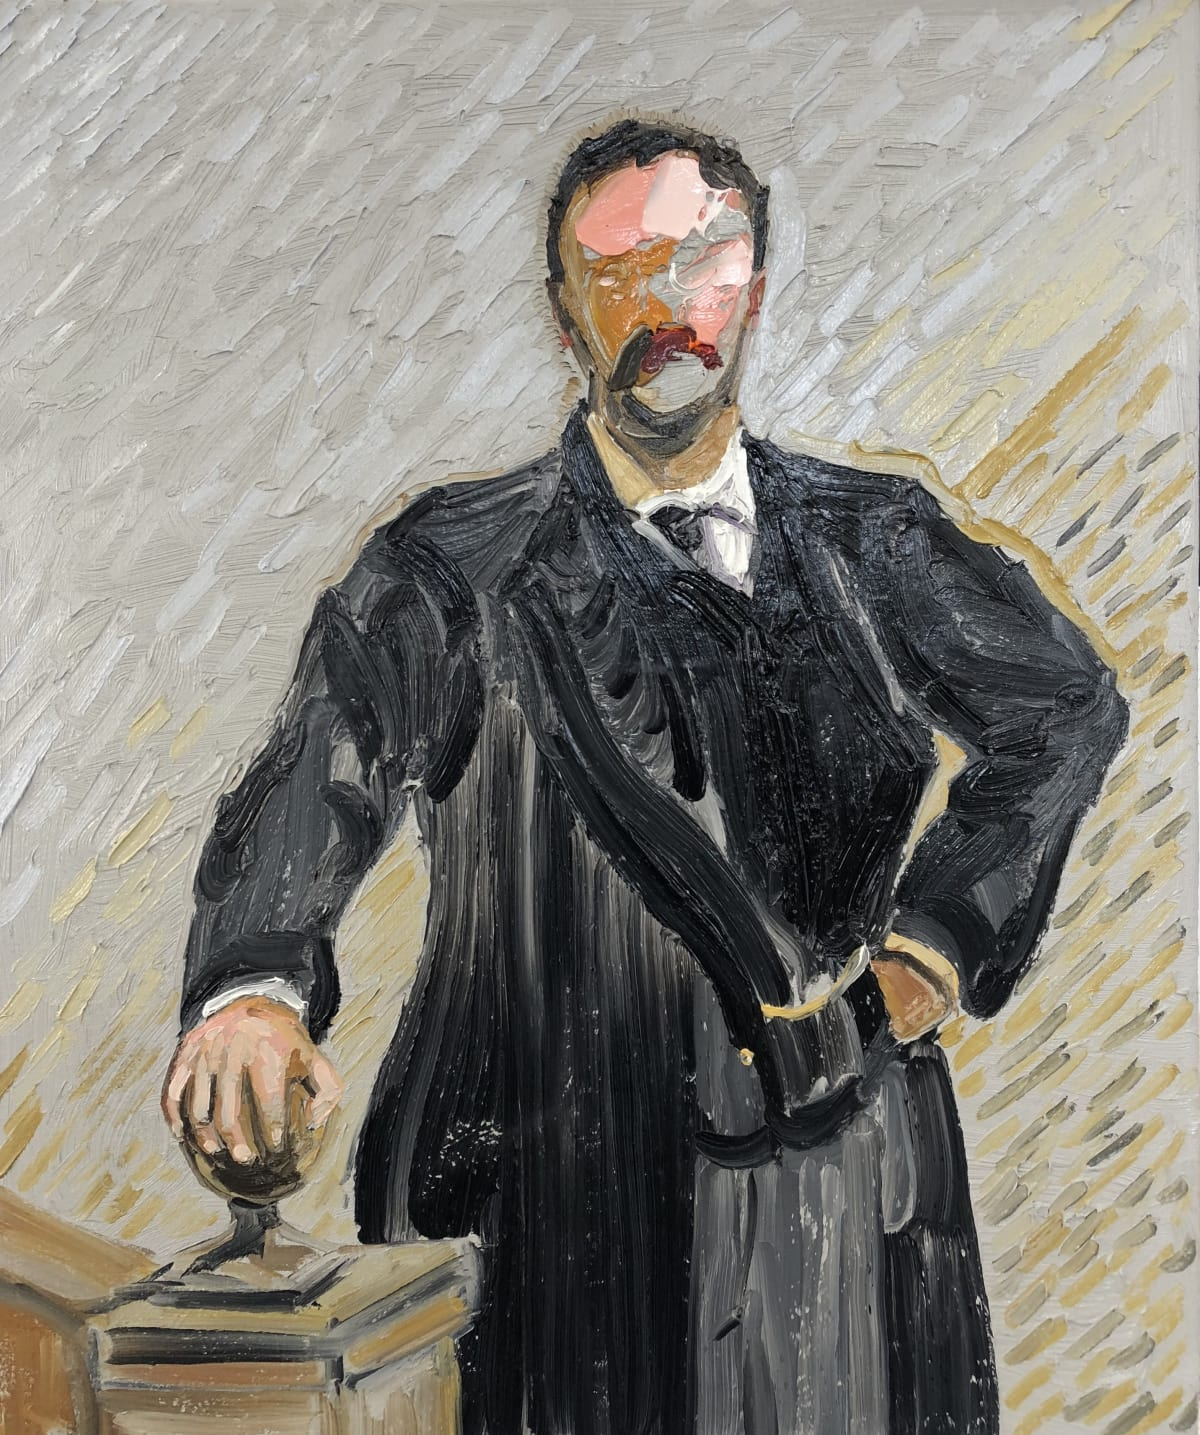 Frans Smit After Sargent, Man in Black Suit, 2018 Oil on Canvas 23 1/2 x 19 1/2 in 60 x 50 cm